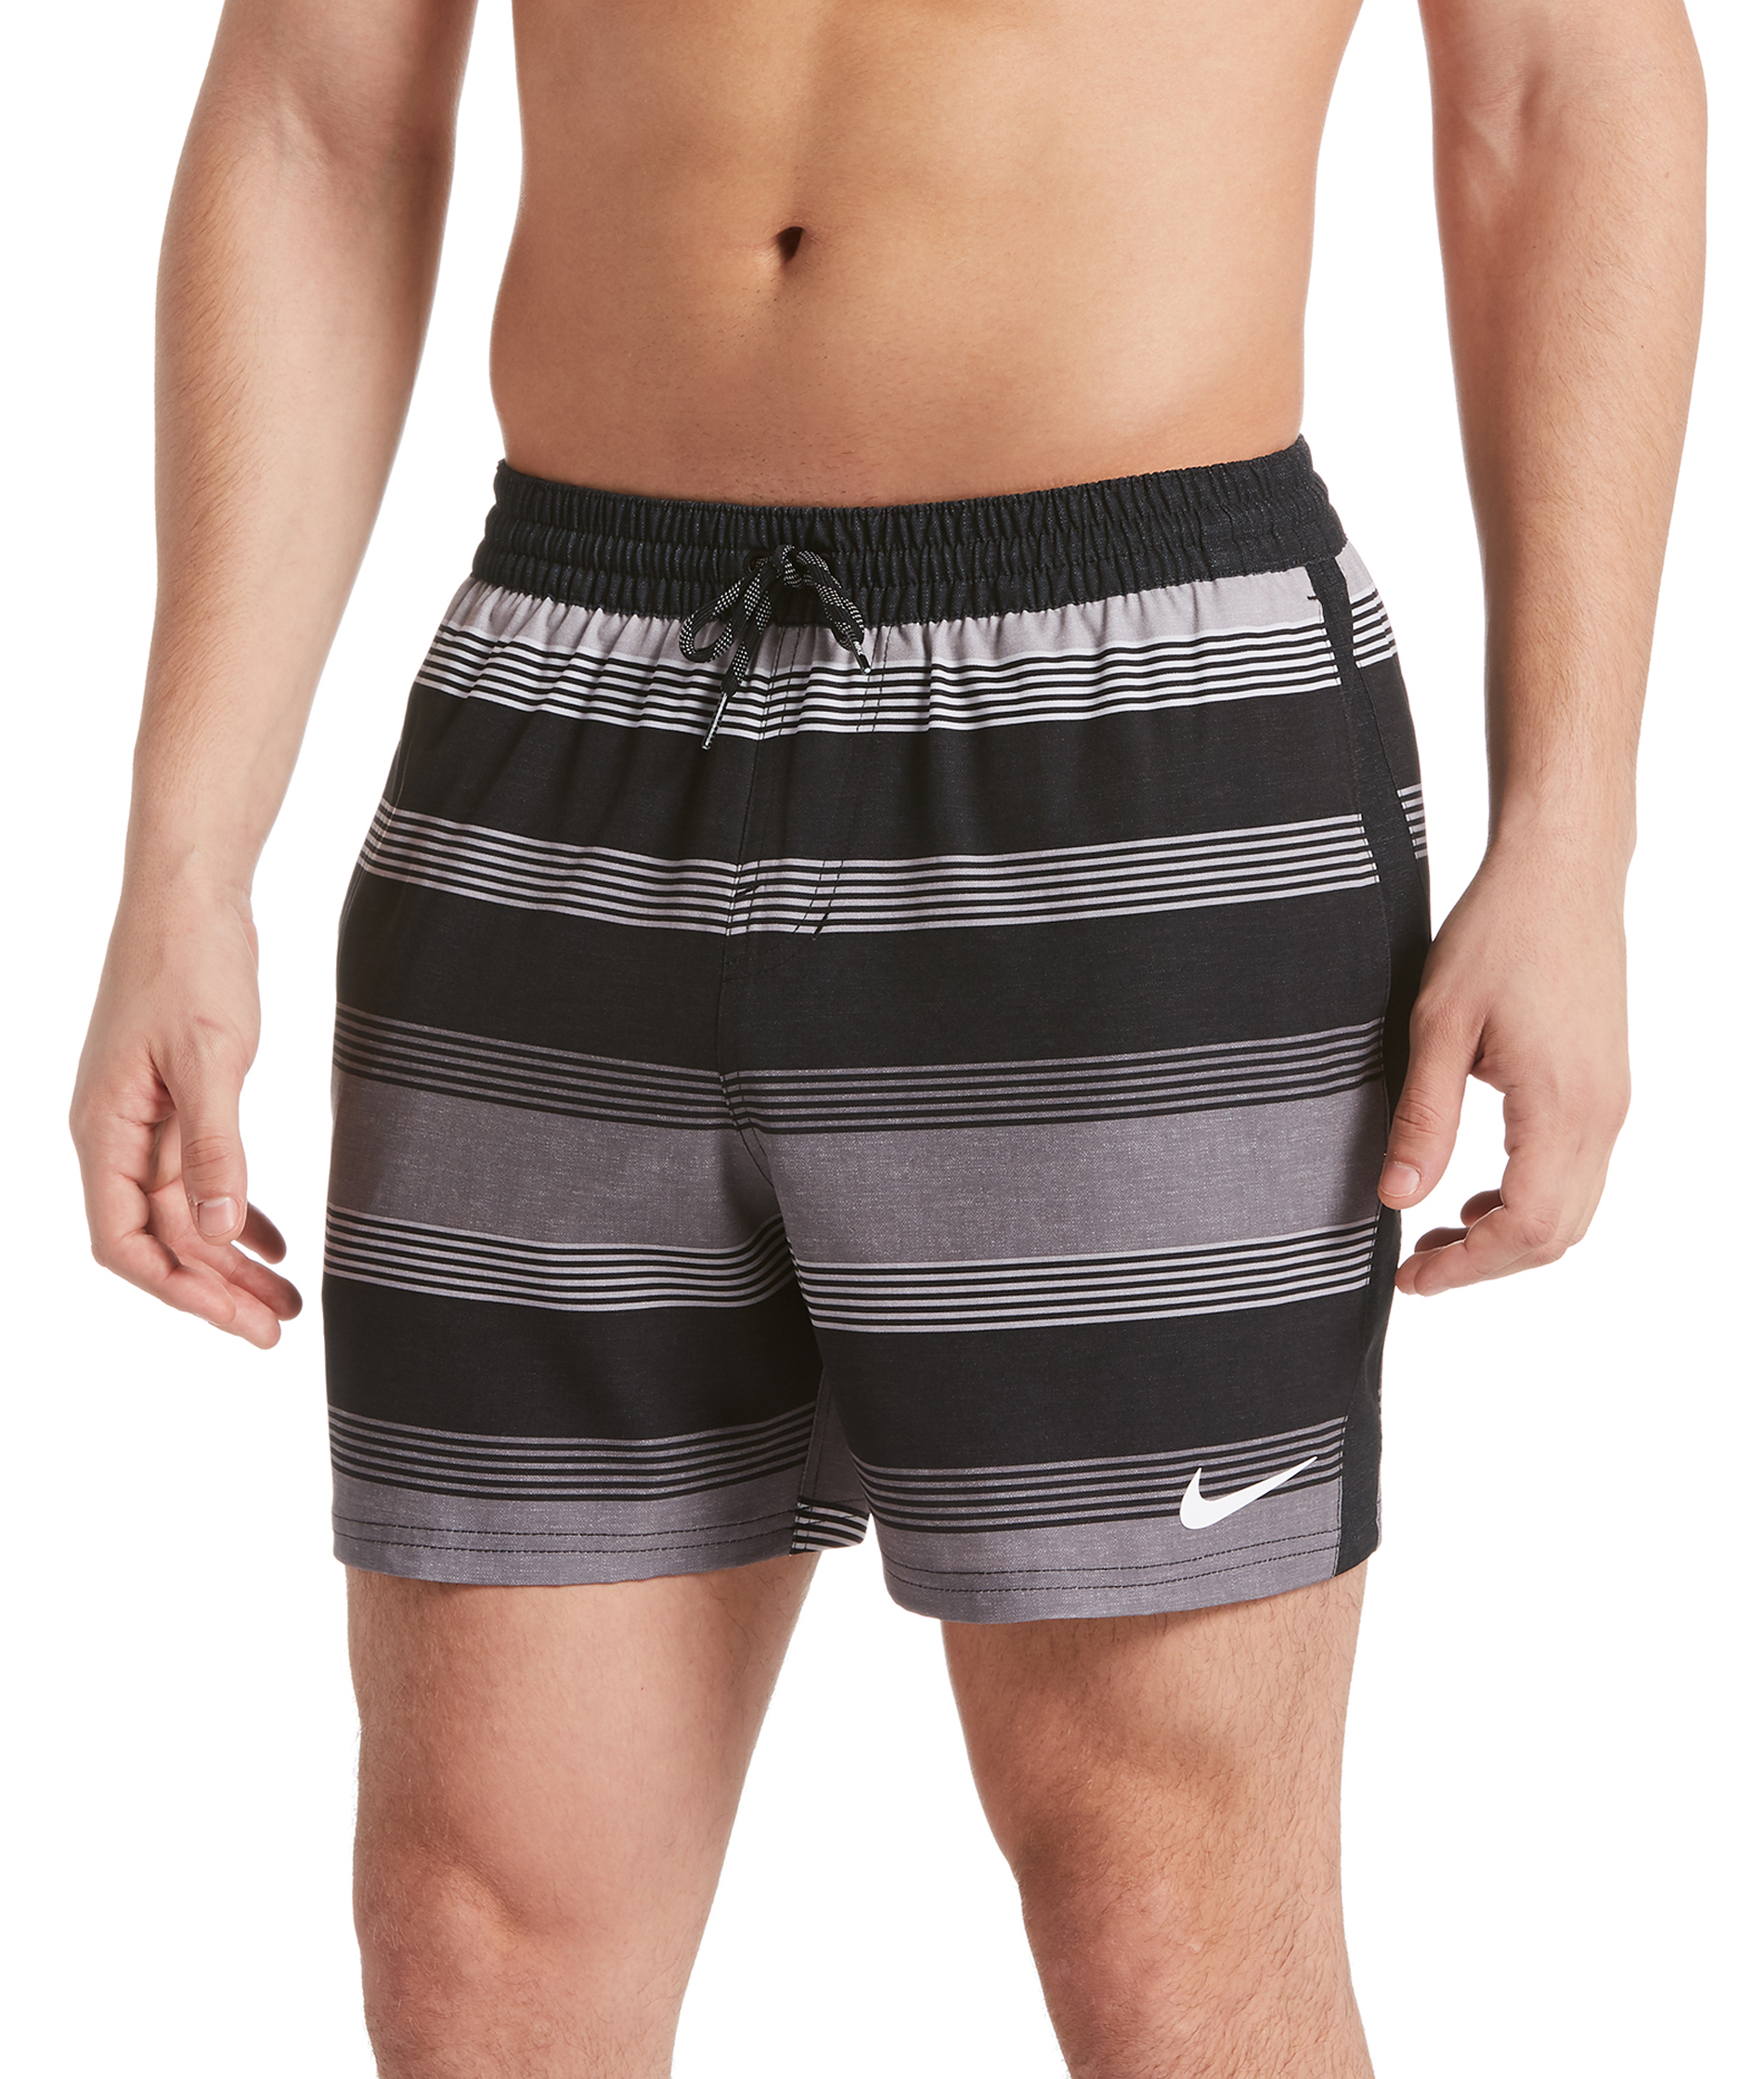 Nike Swim Linen Racer 5 Volley Short - Black